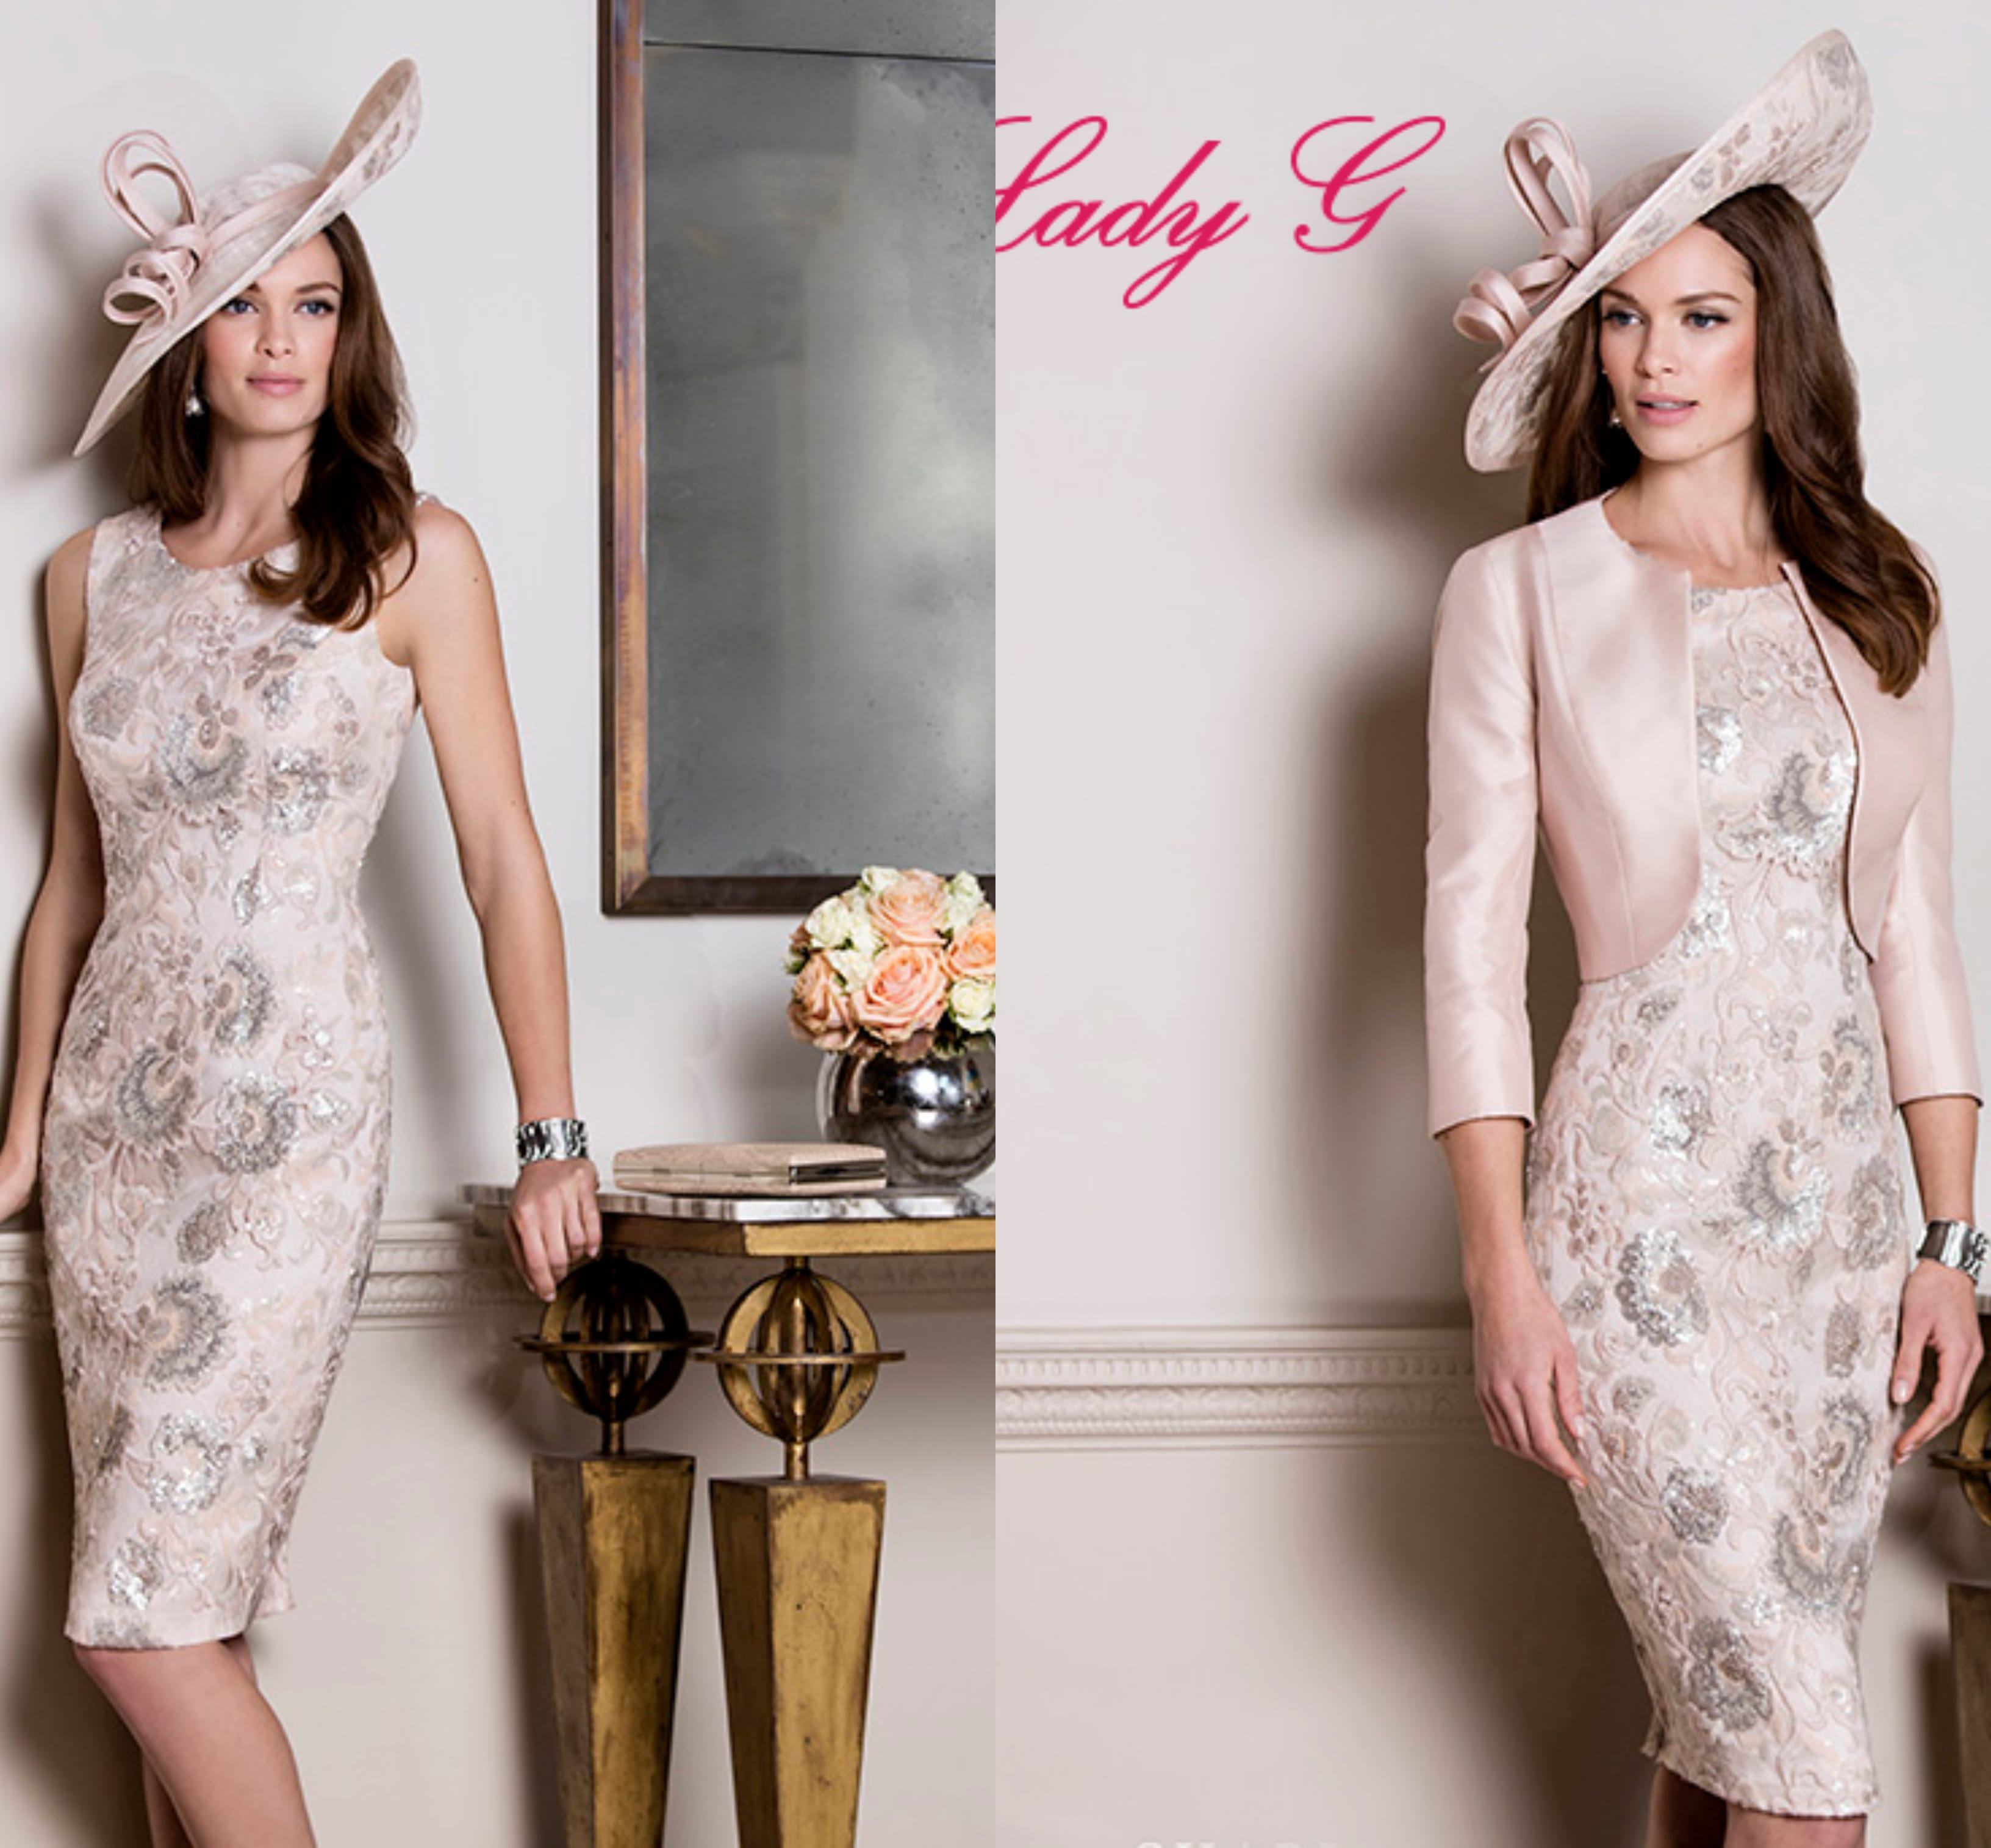 Special Offers | Lady G